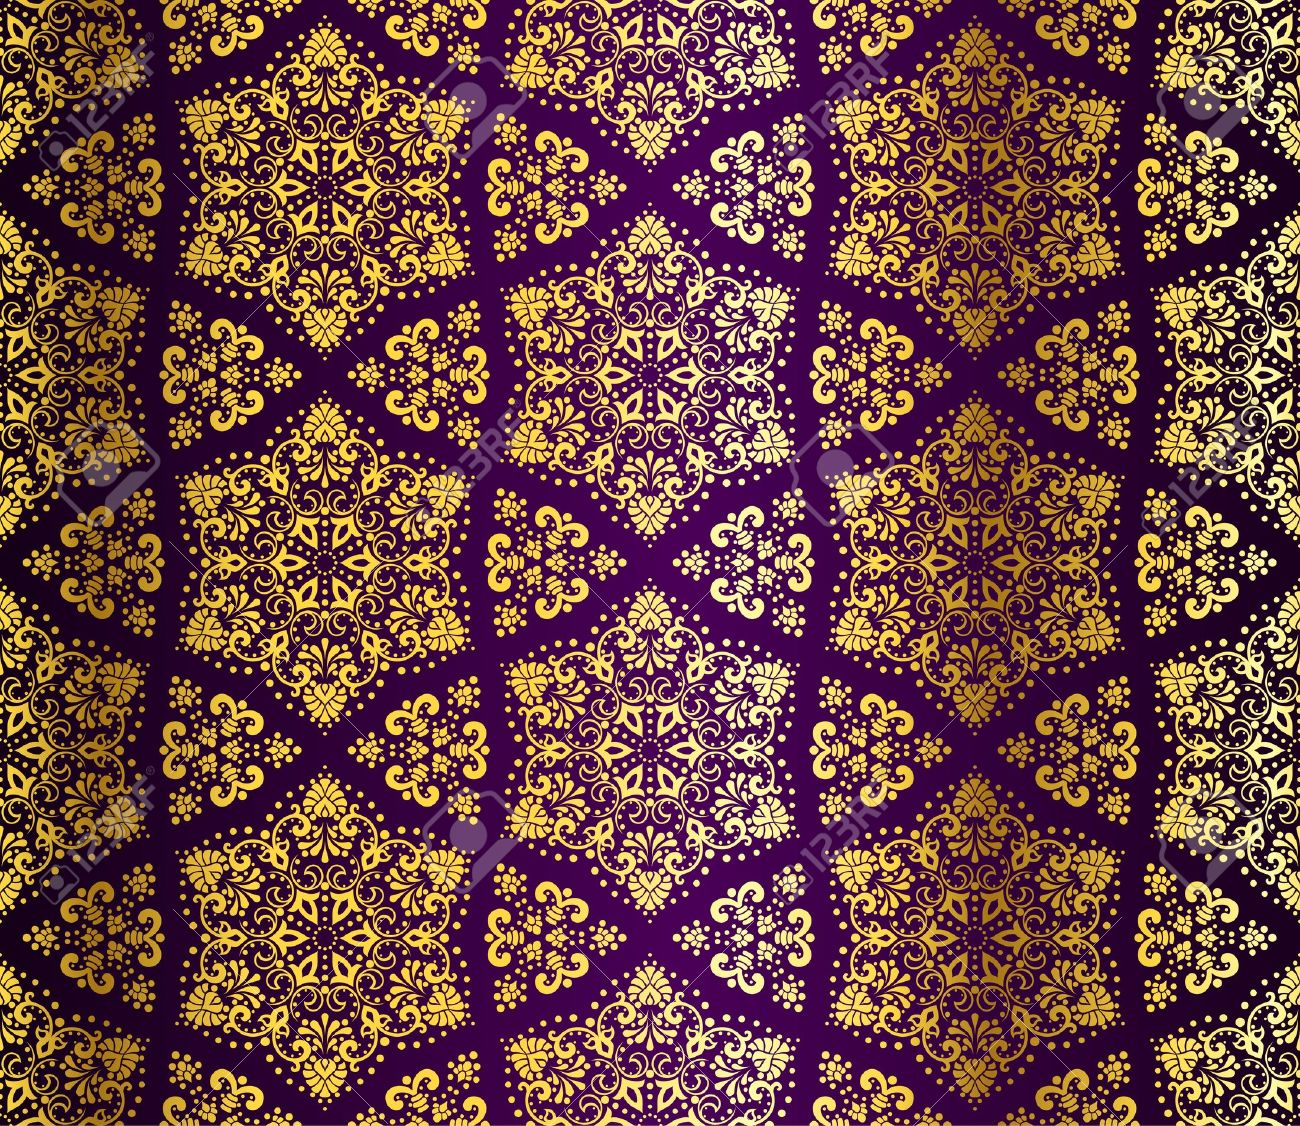 Seamless purple and gold starshaped pattern inspired by Islamic art.  The tiles can be combined seamlessly. Graphics are grouped and in several layers for easy editing. The file can be scaled to any size. Stock Vector - 8557103